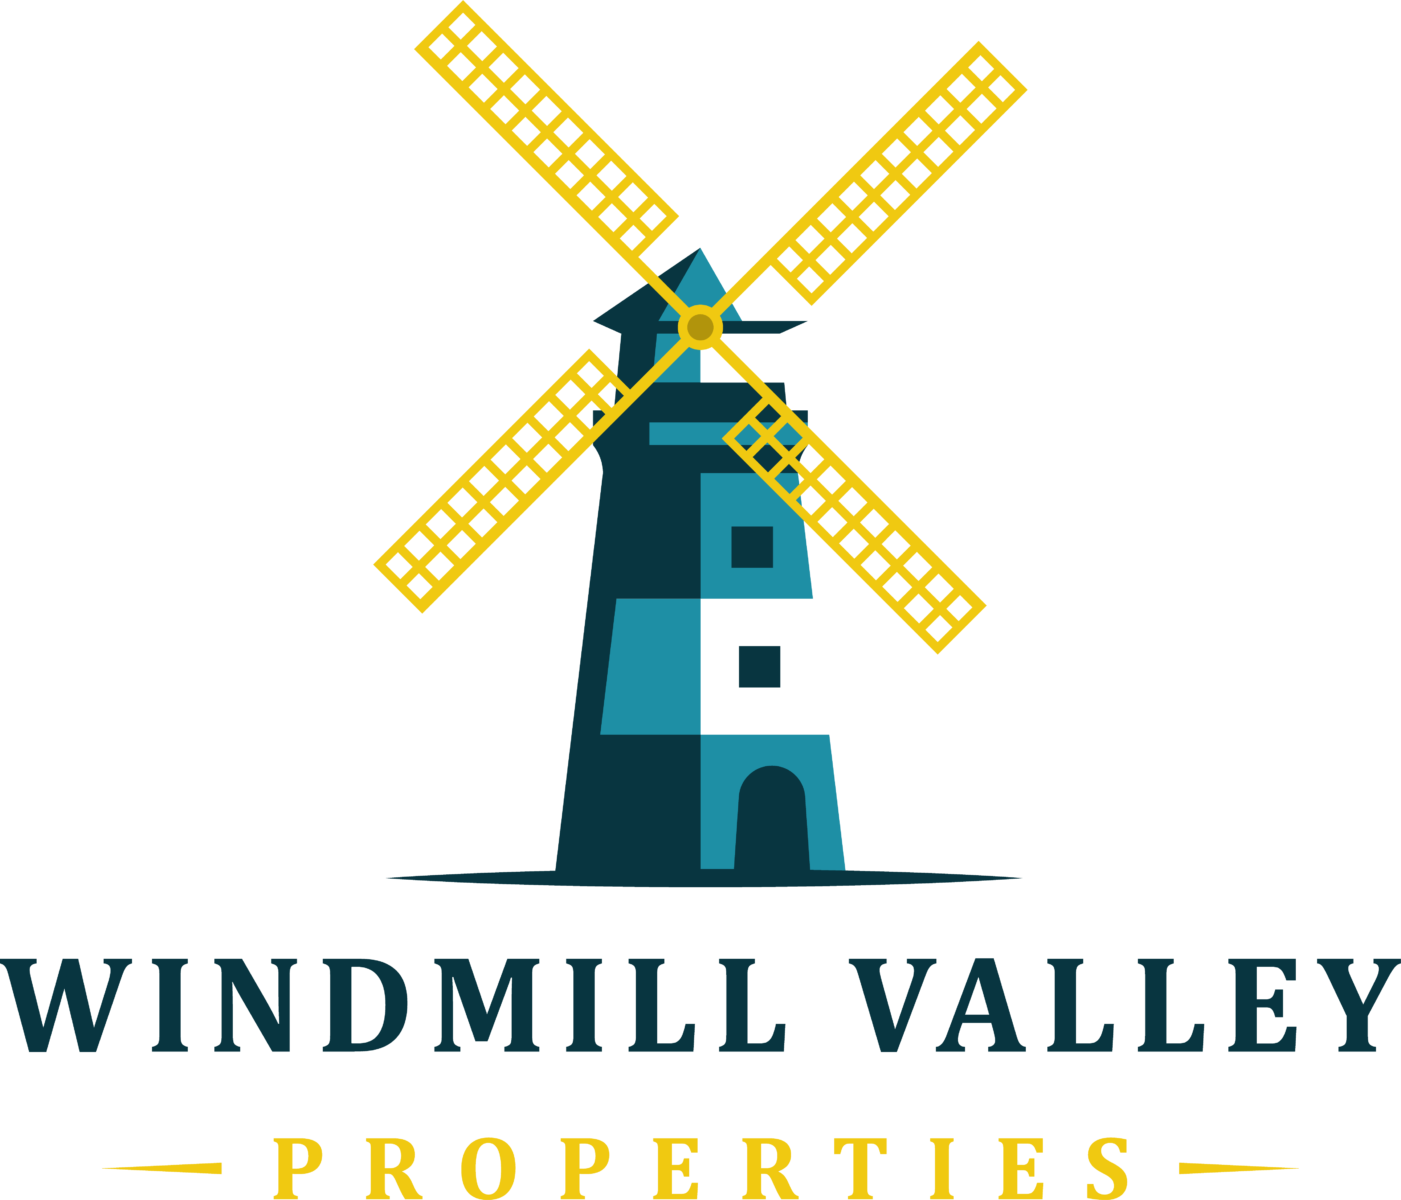 Windmill Valley Properties logo